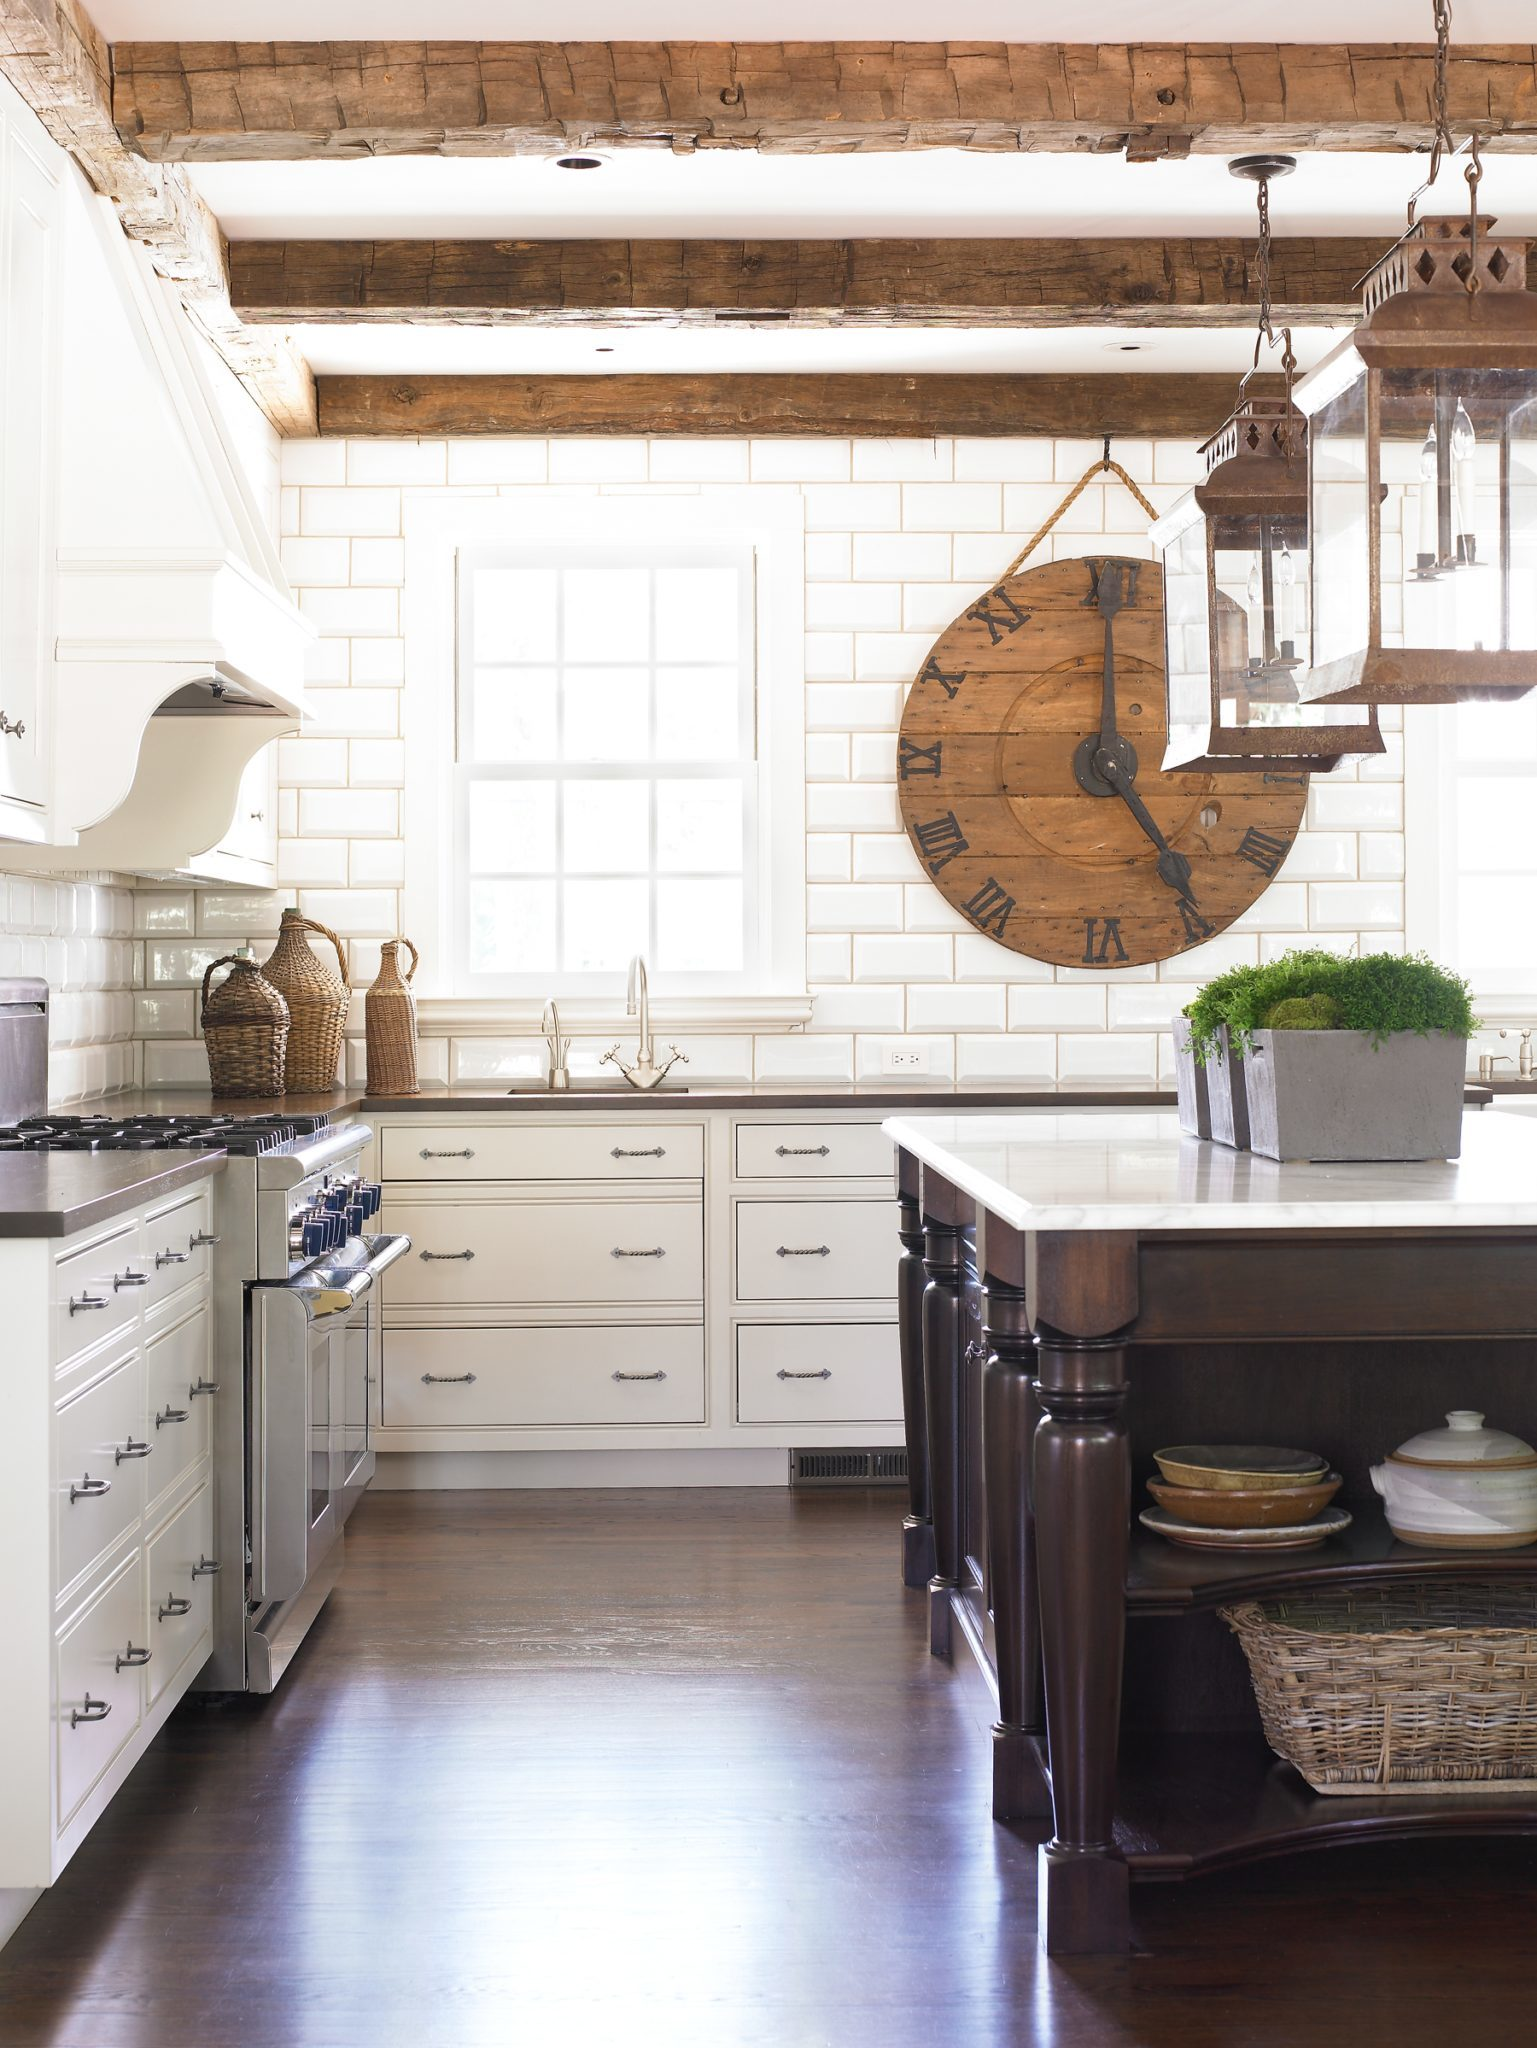 An airy, rustic kitchen by Amy Morris